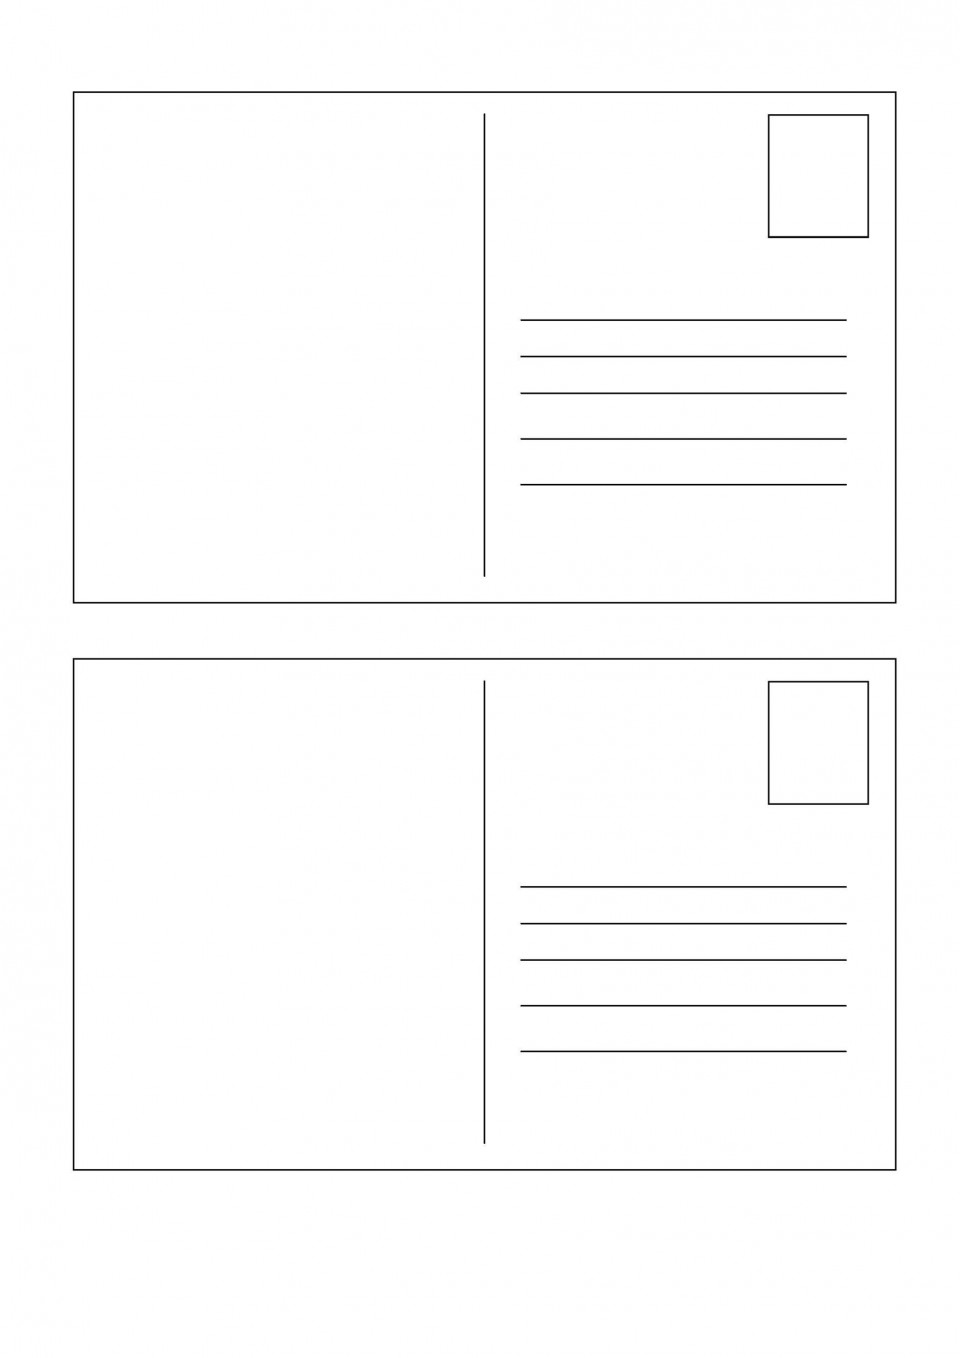 009 Top Postcard Layout For Microsoft Word Photo  Busines Template960